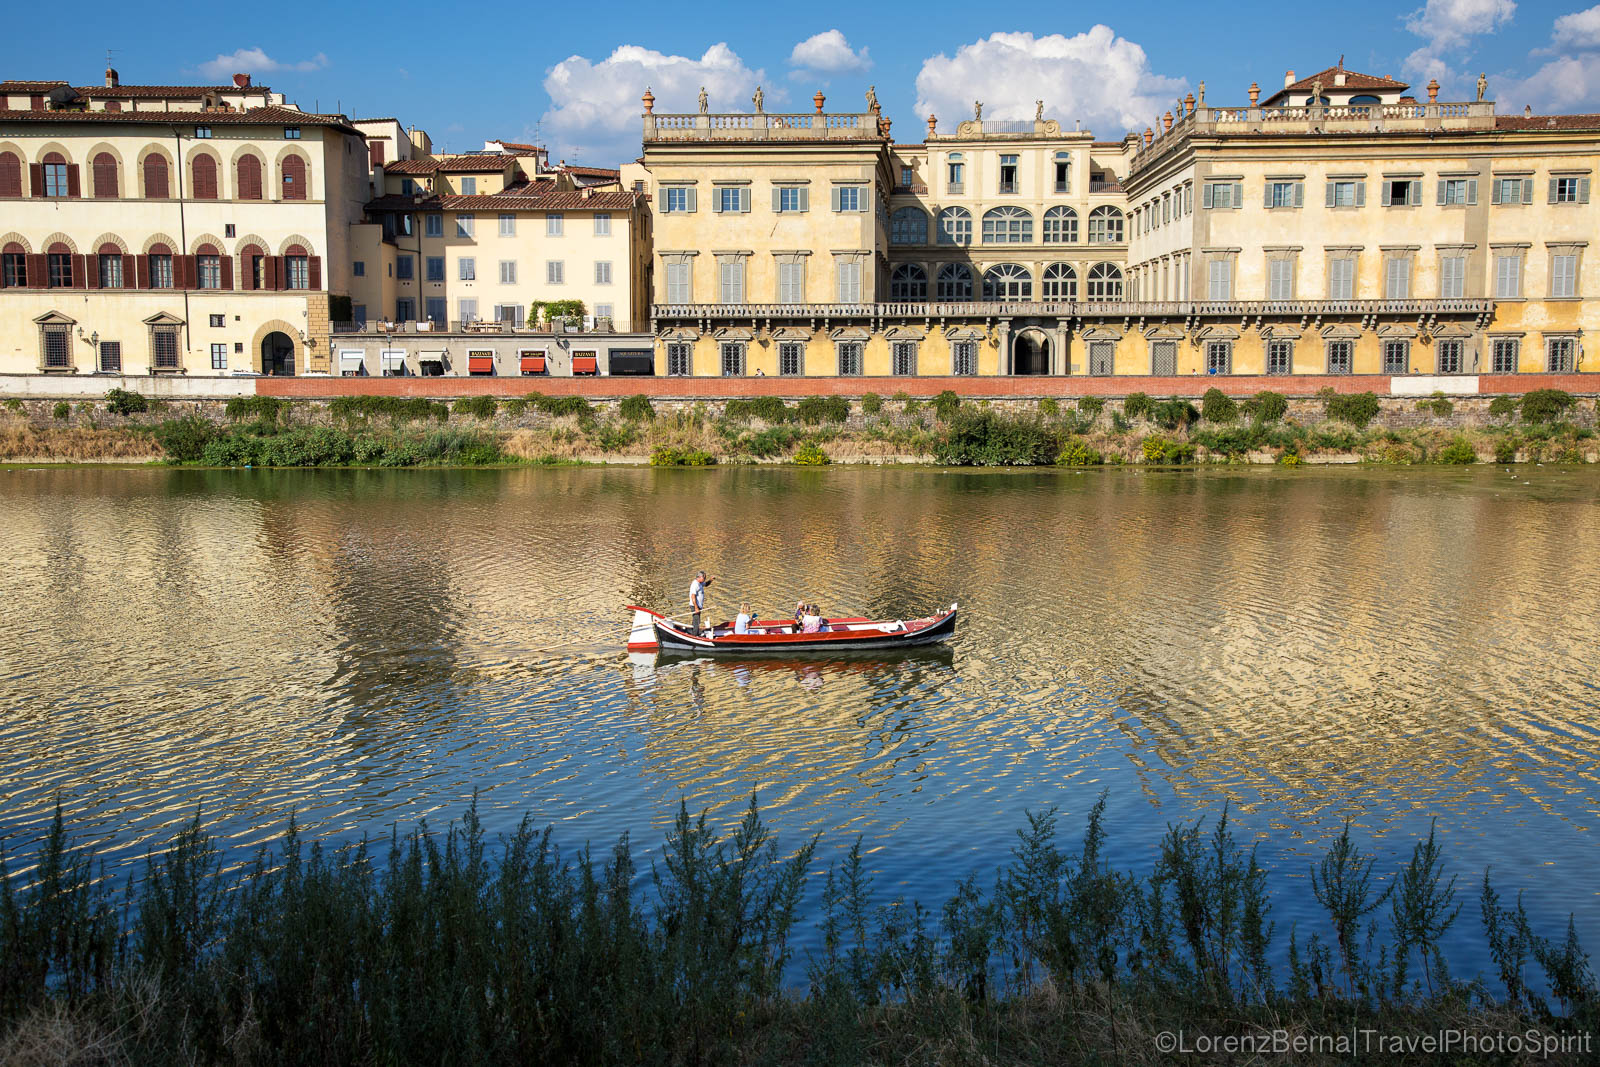 Small boat crossing the Arno River in Florence, Tuscany, Italy.